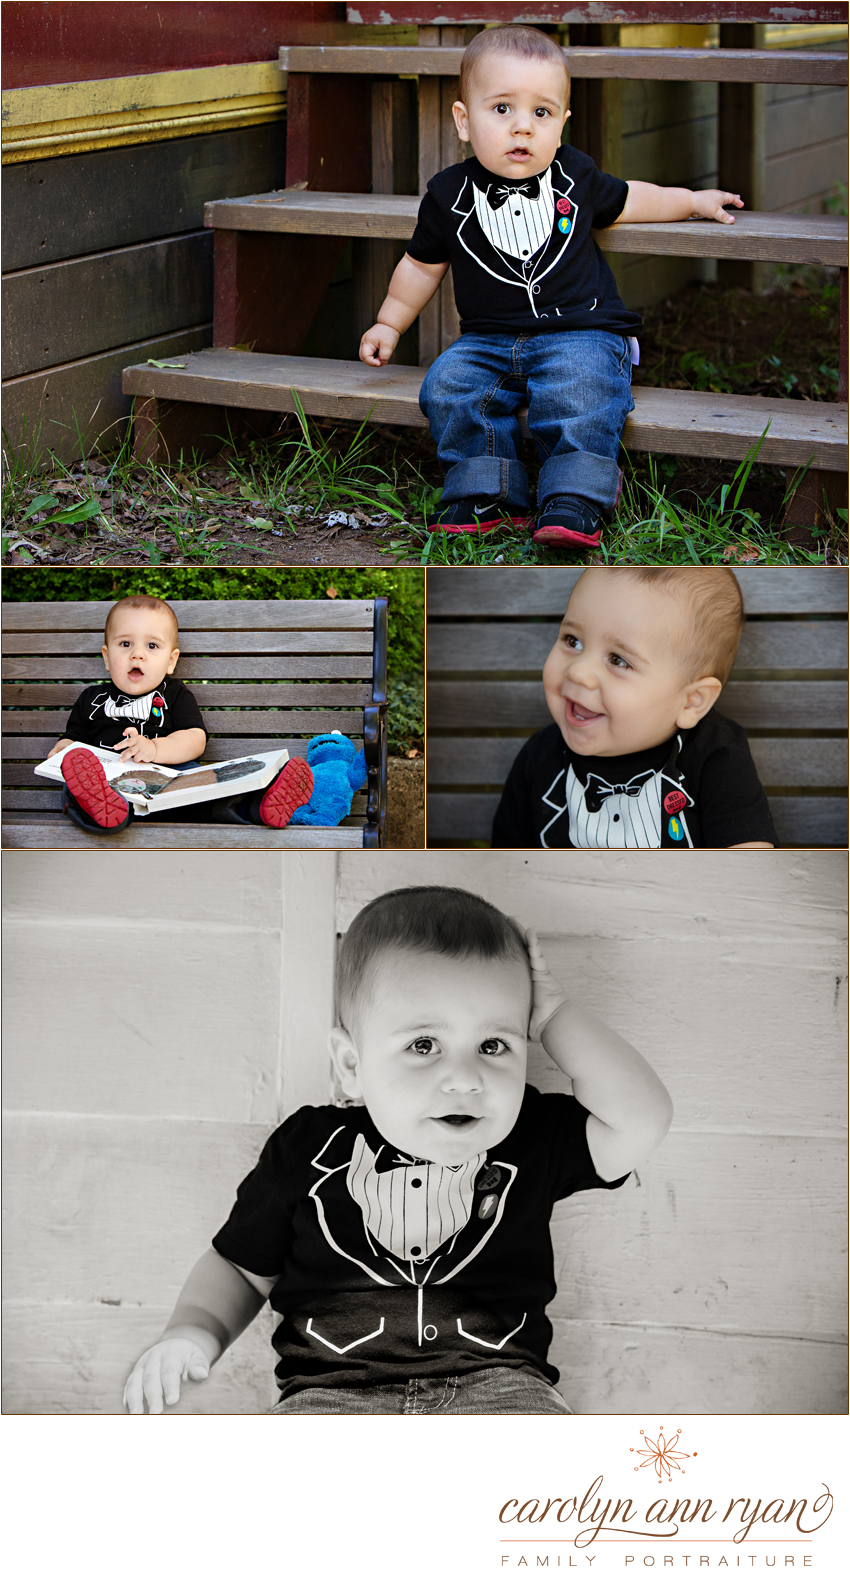 Weddington, North Carolina Child Photographer Carolyn Ann Ryan photographs an adorable little man